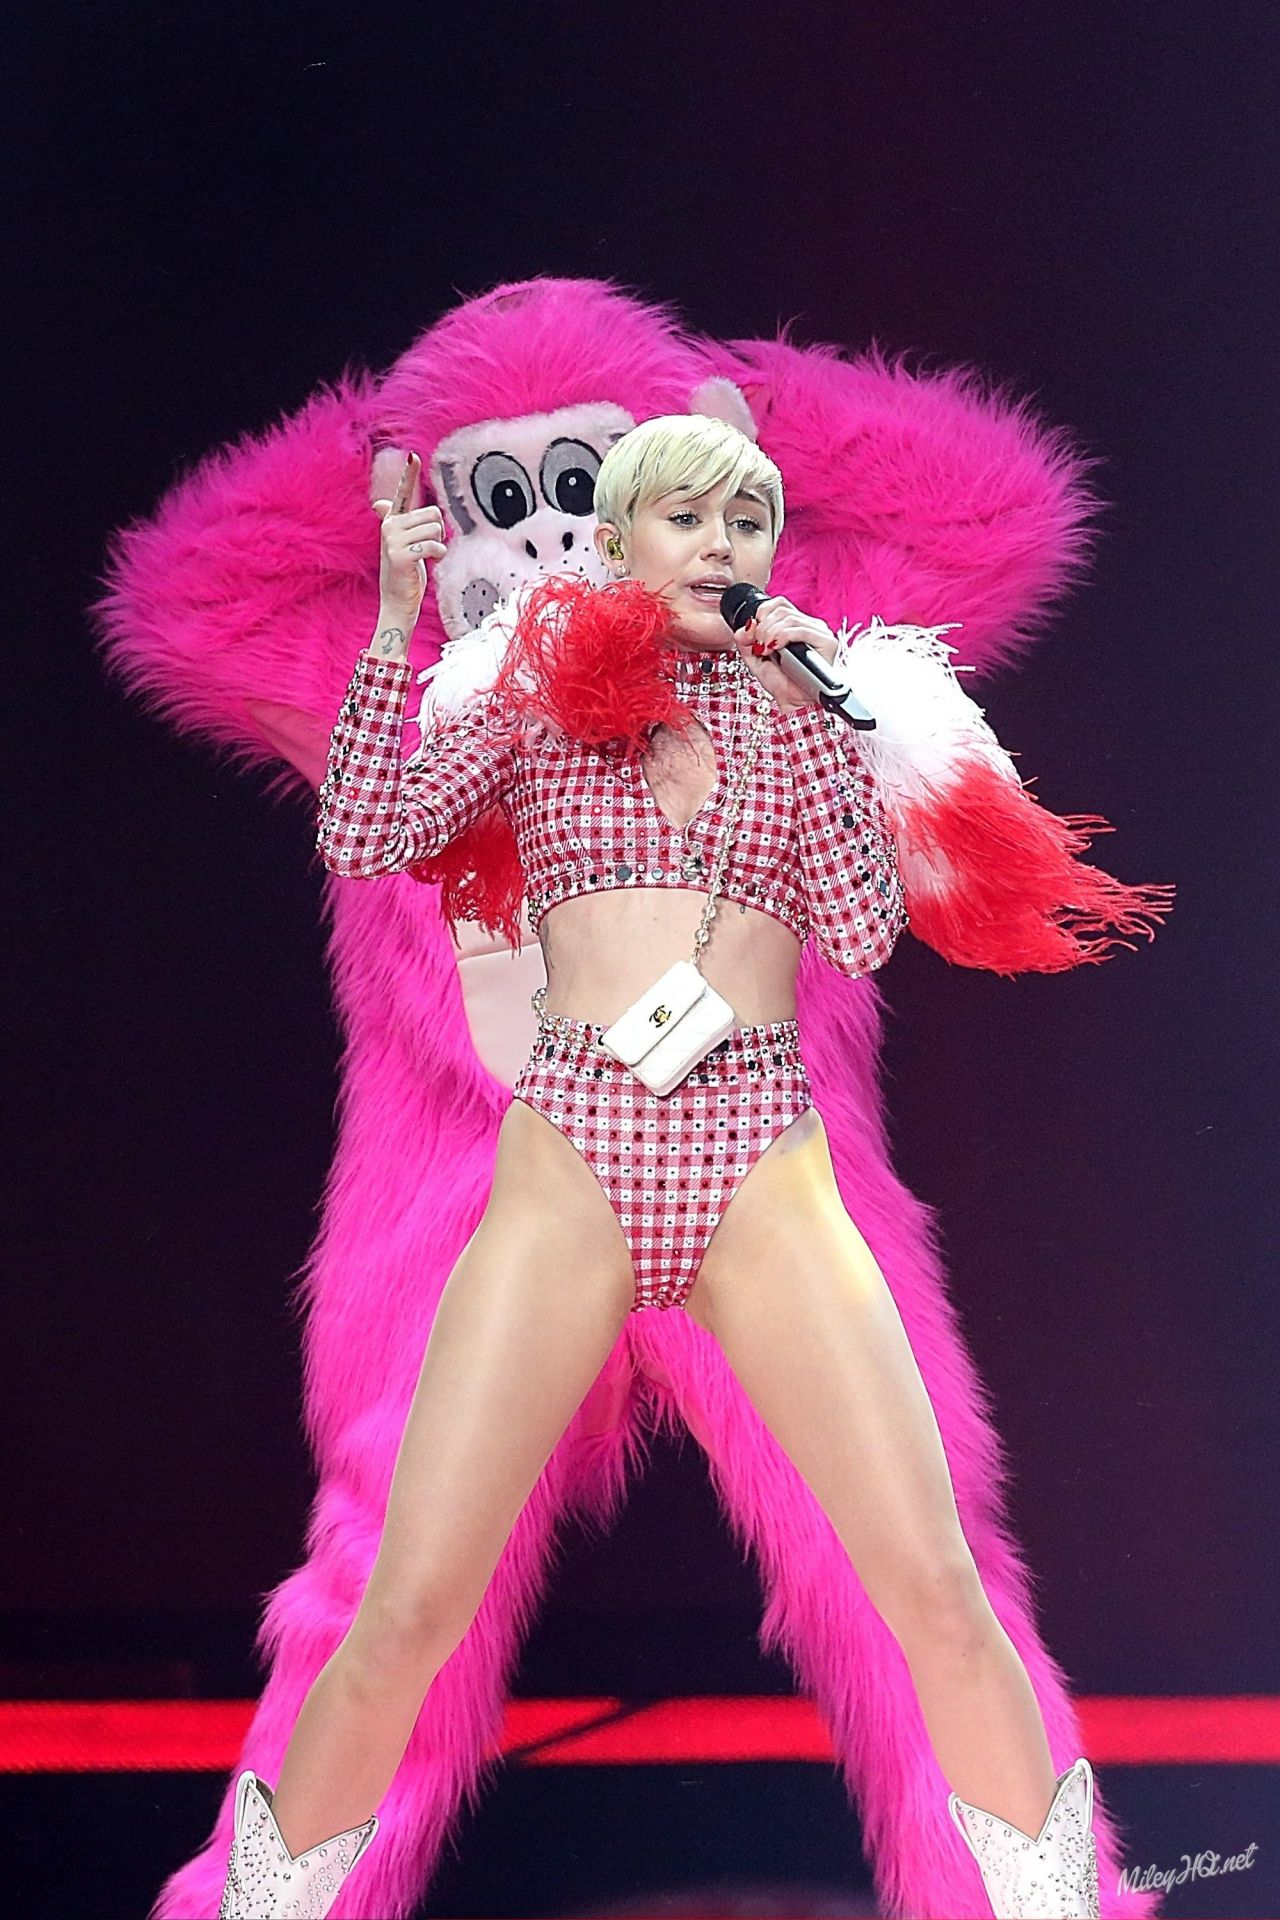 Miley Cyrus Performs at Bangerz Tour at AT&T Center in San Antonio - March 2014